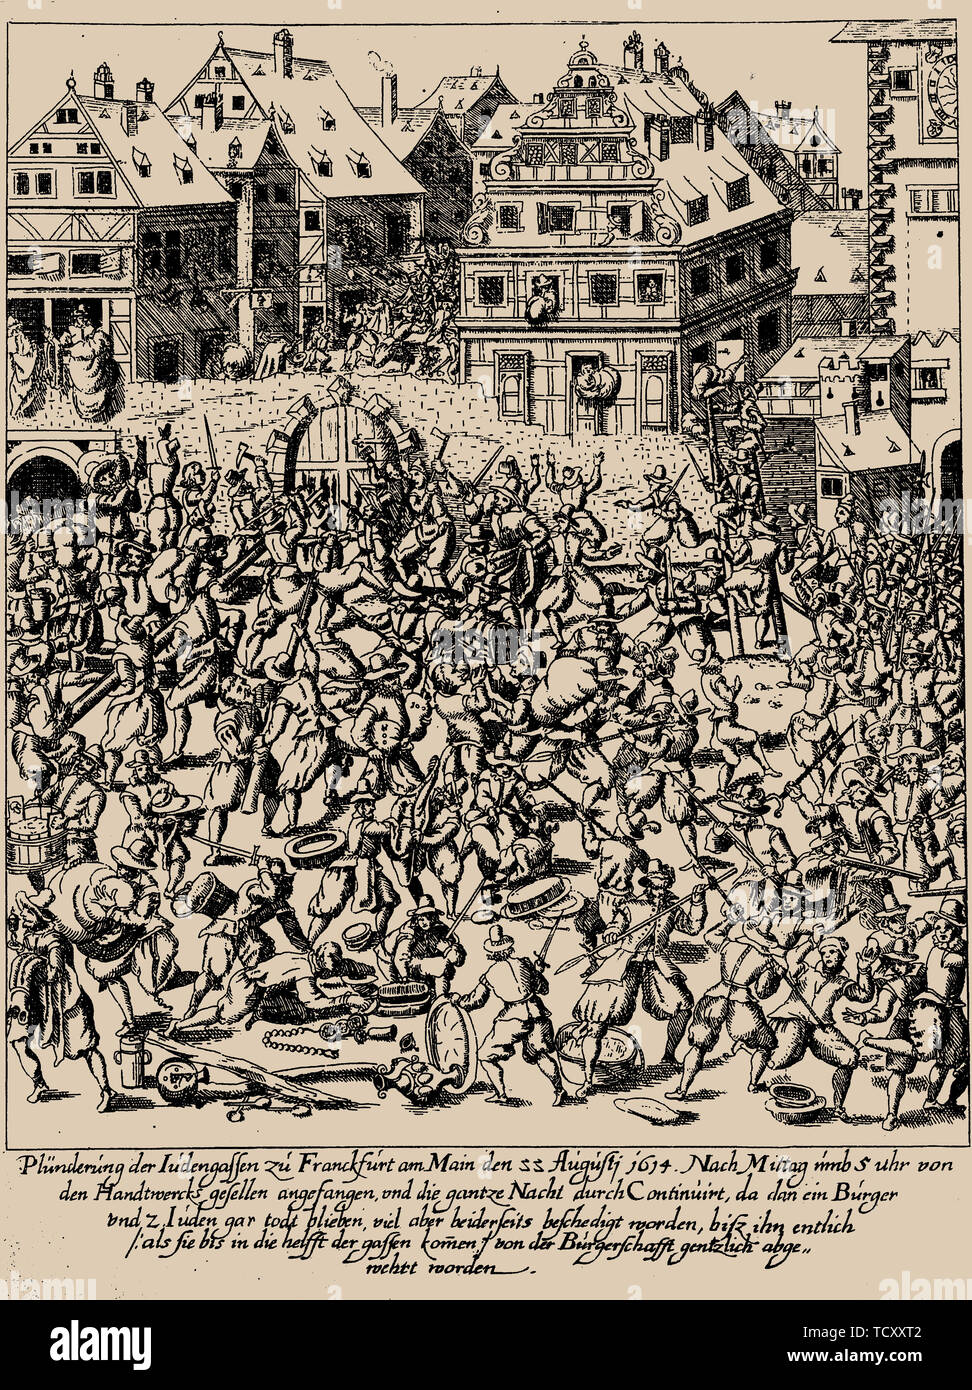 The Fettmilch Rising. The plundering of the Judengasse in Frankfurt on August 22, 1614, c. 1616-1617. Private Collection. - Stock Image